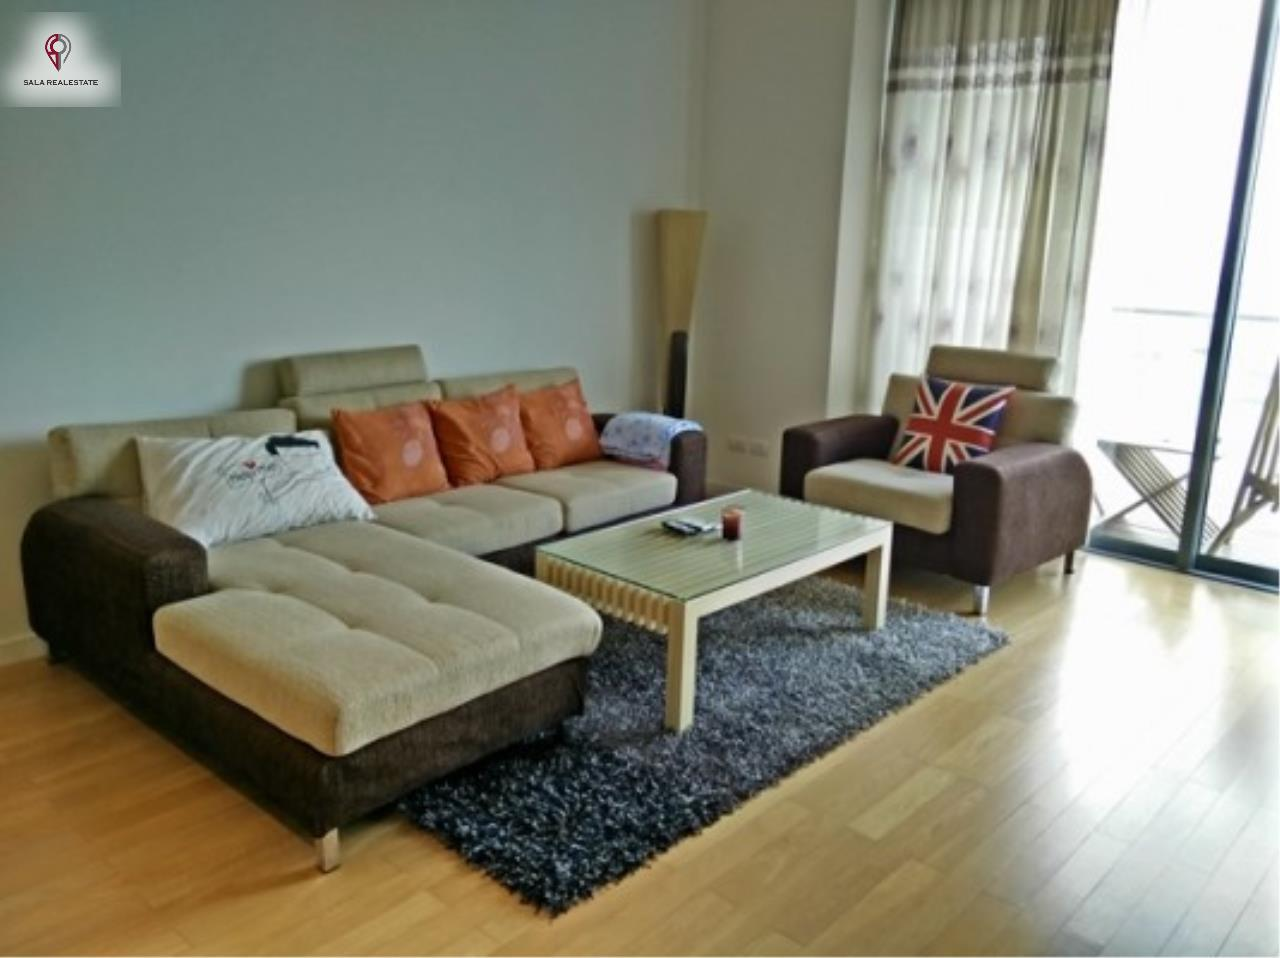 SALA ESTATE Agency's ( FOR SALE ) THE PANO - 2 BEDROOMS 2 BATHROOMS, FULLY FURNISHED 2